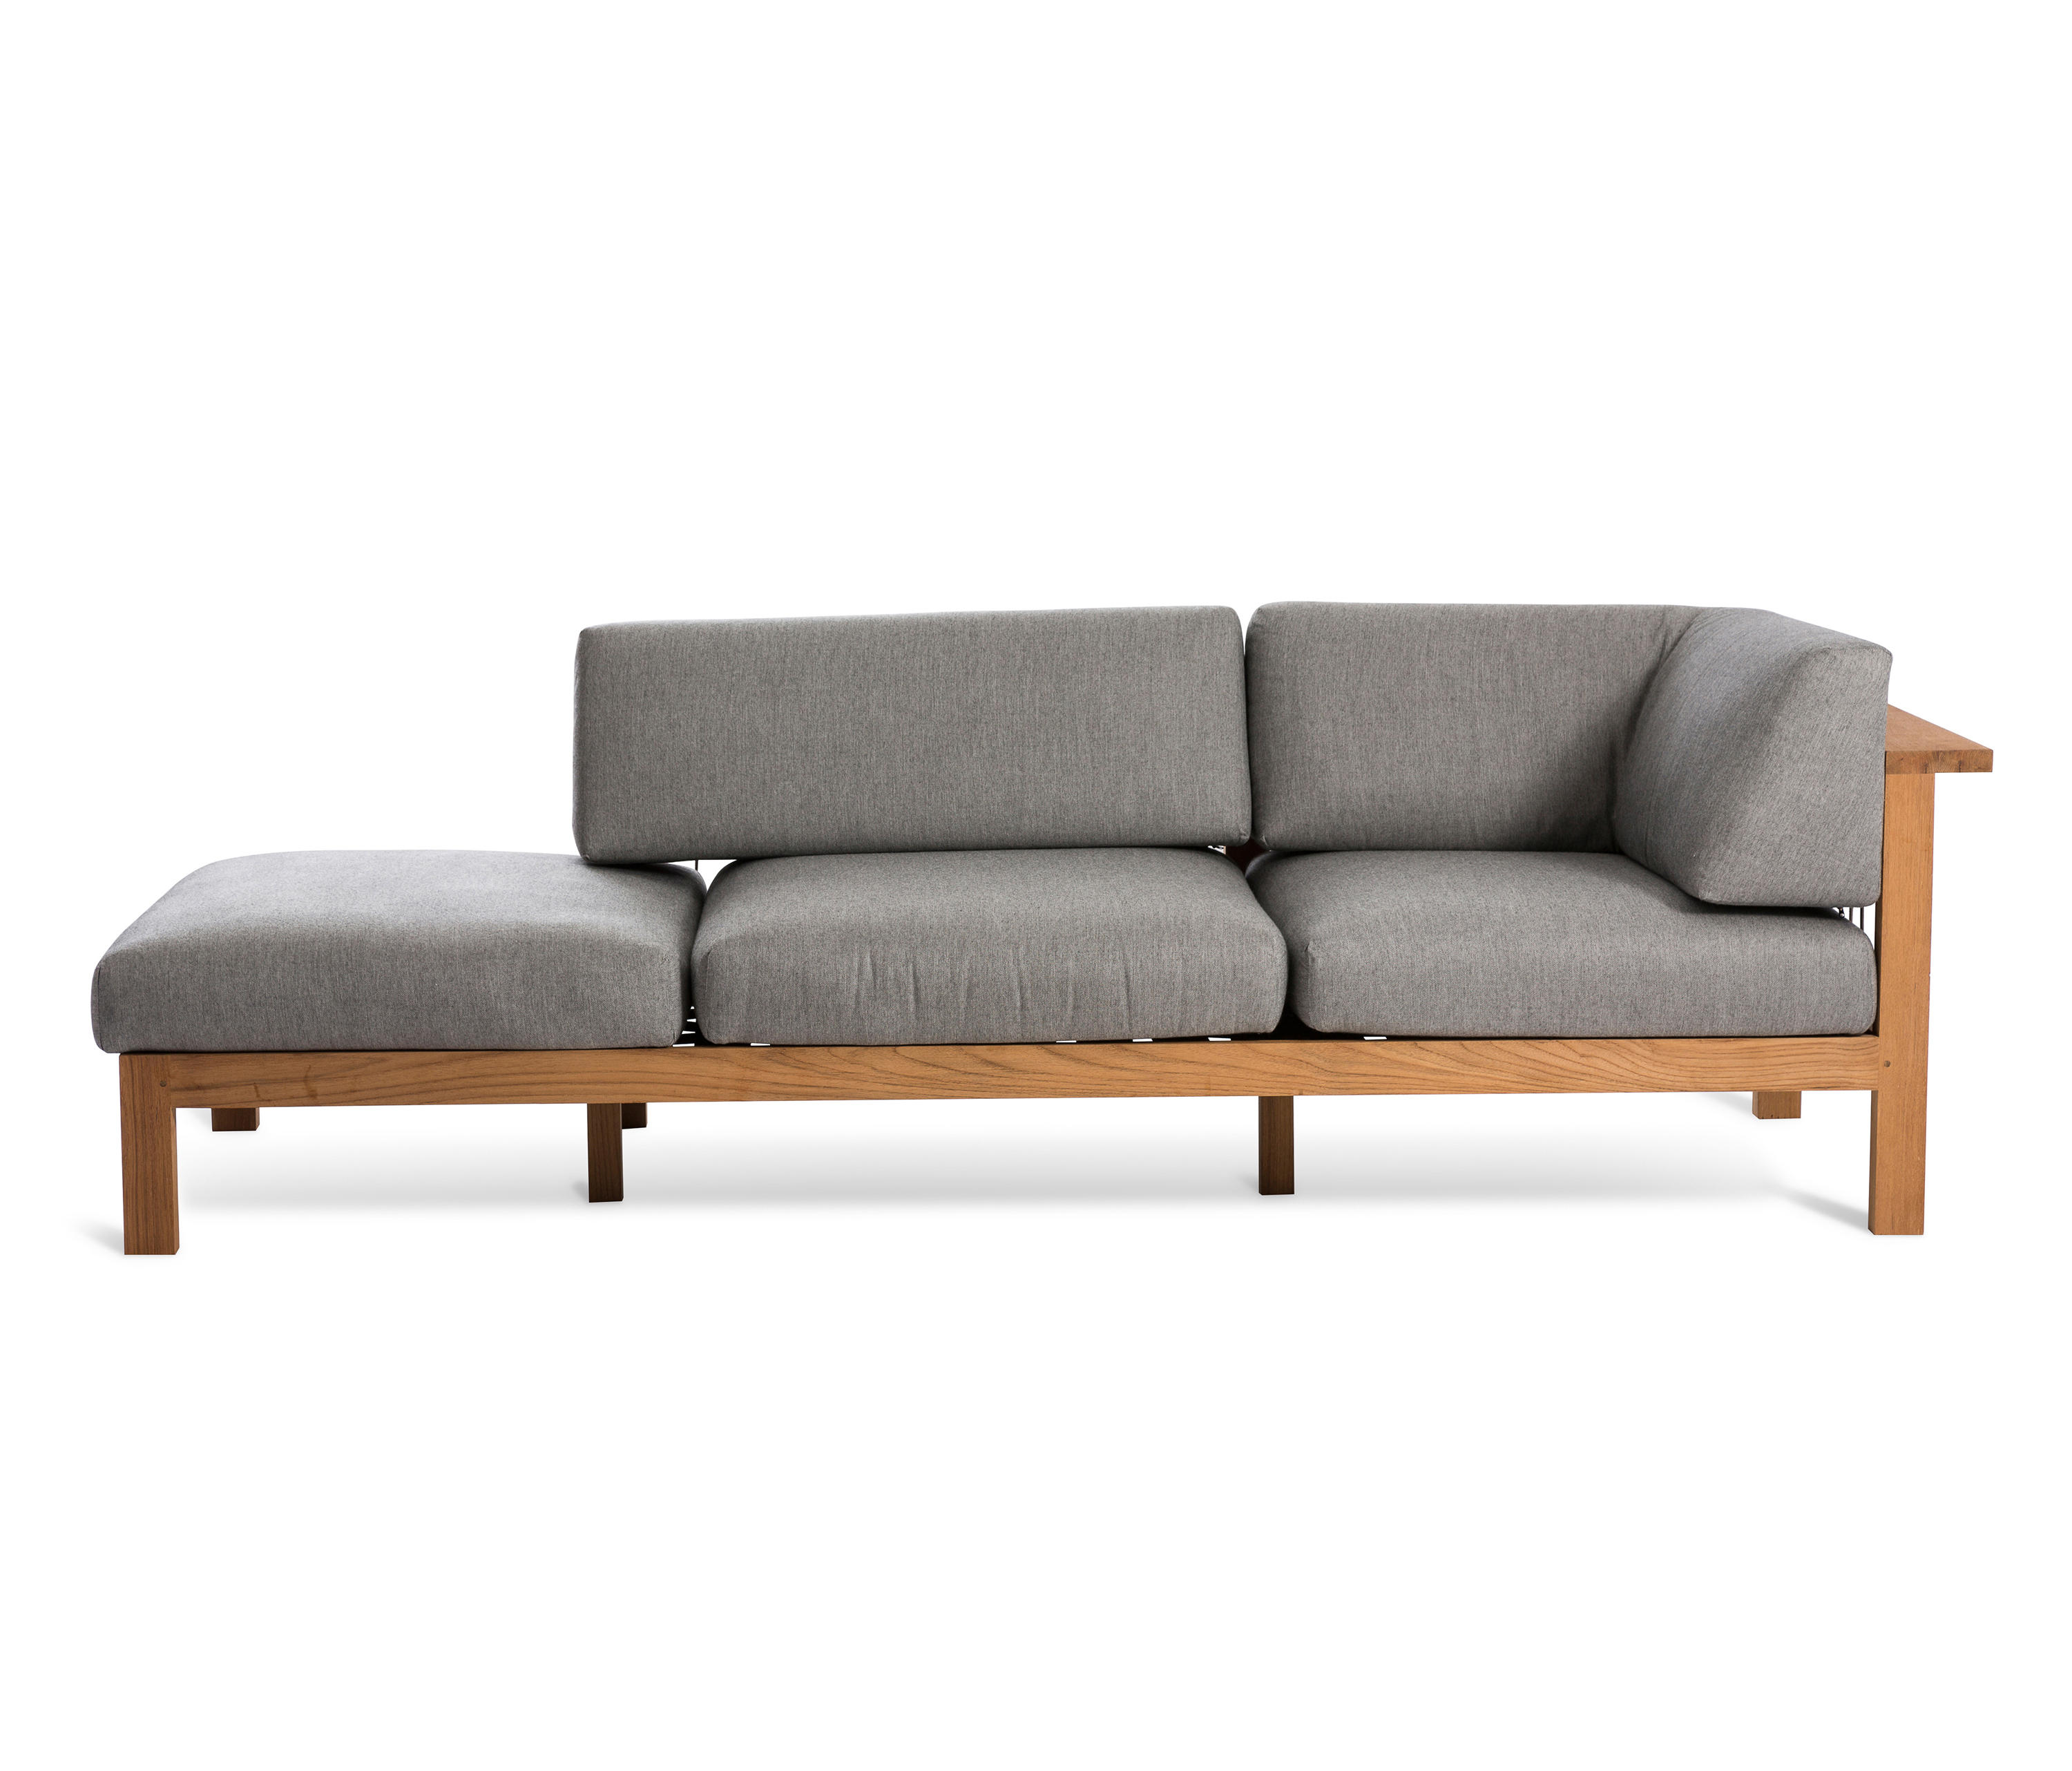 Maro chaise longue arm right garden sofas by oasiq for Sofas y chaise longue